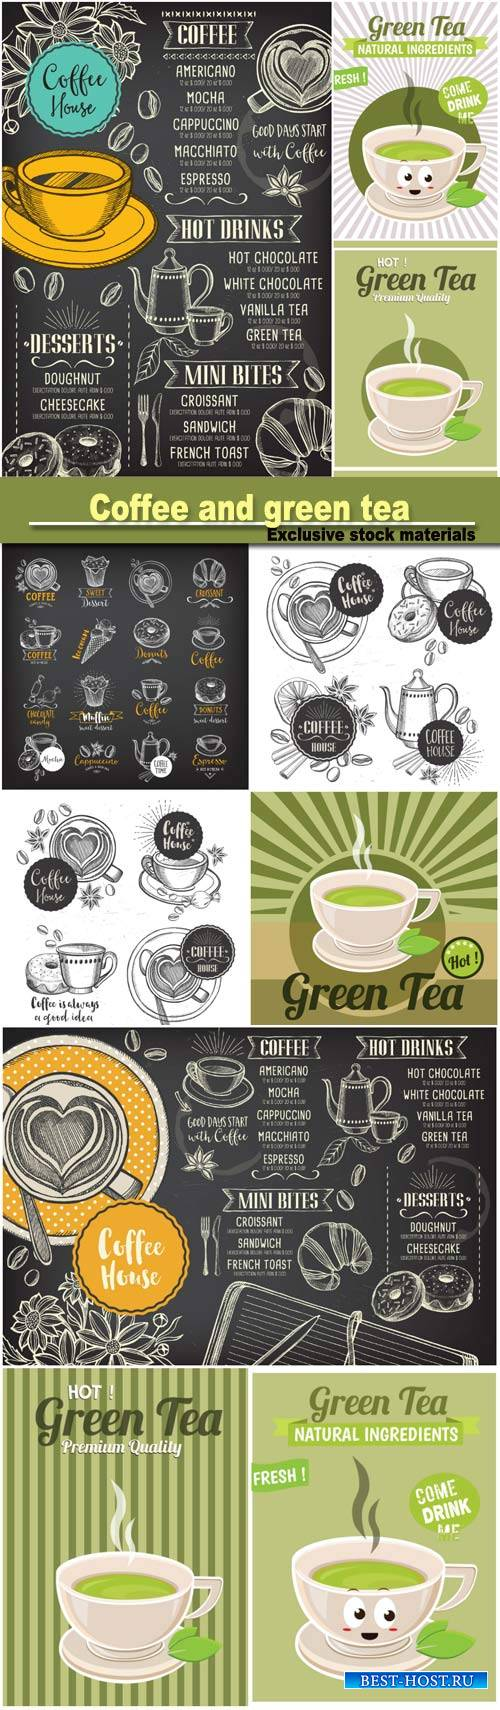 Vintage posters of coffee and green tea